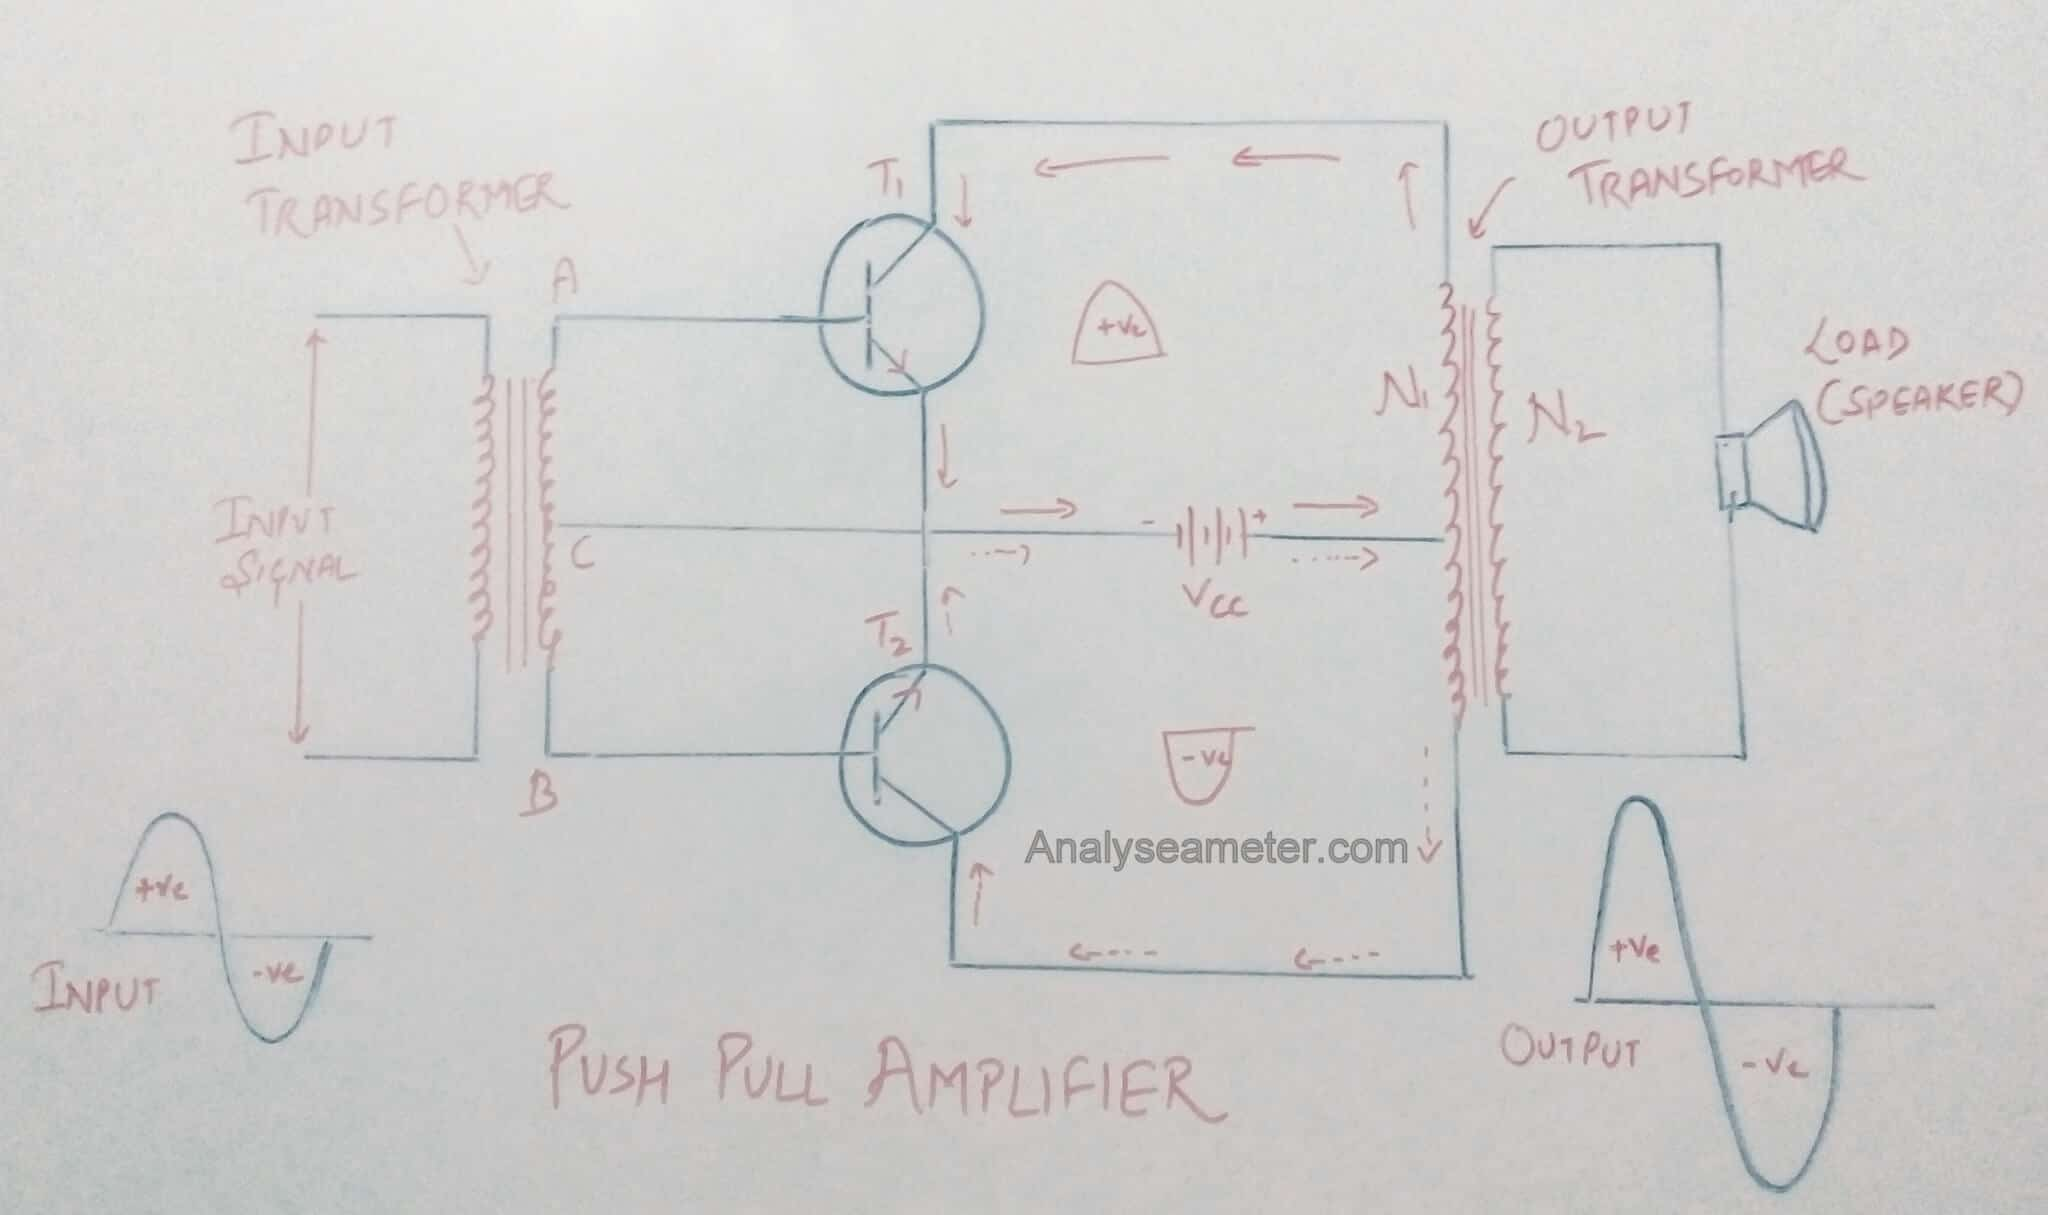 All About Push Pull Amplifier Definition Circuit Diagram And Understand Dc Operation Explanation